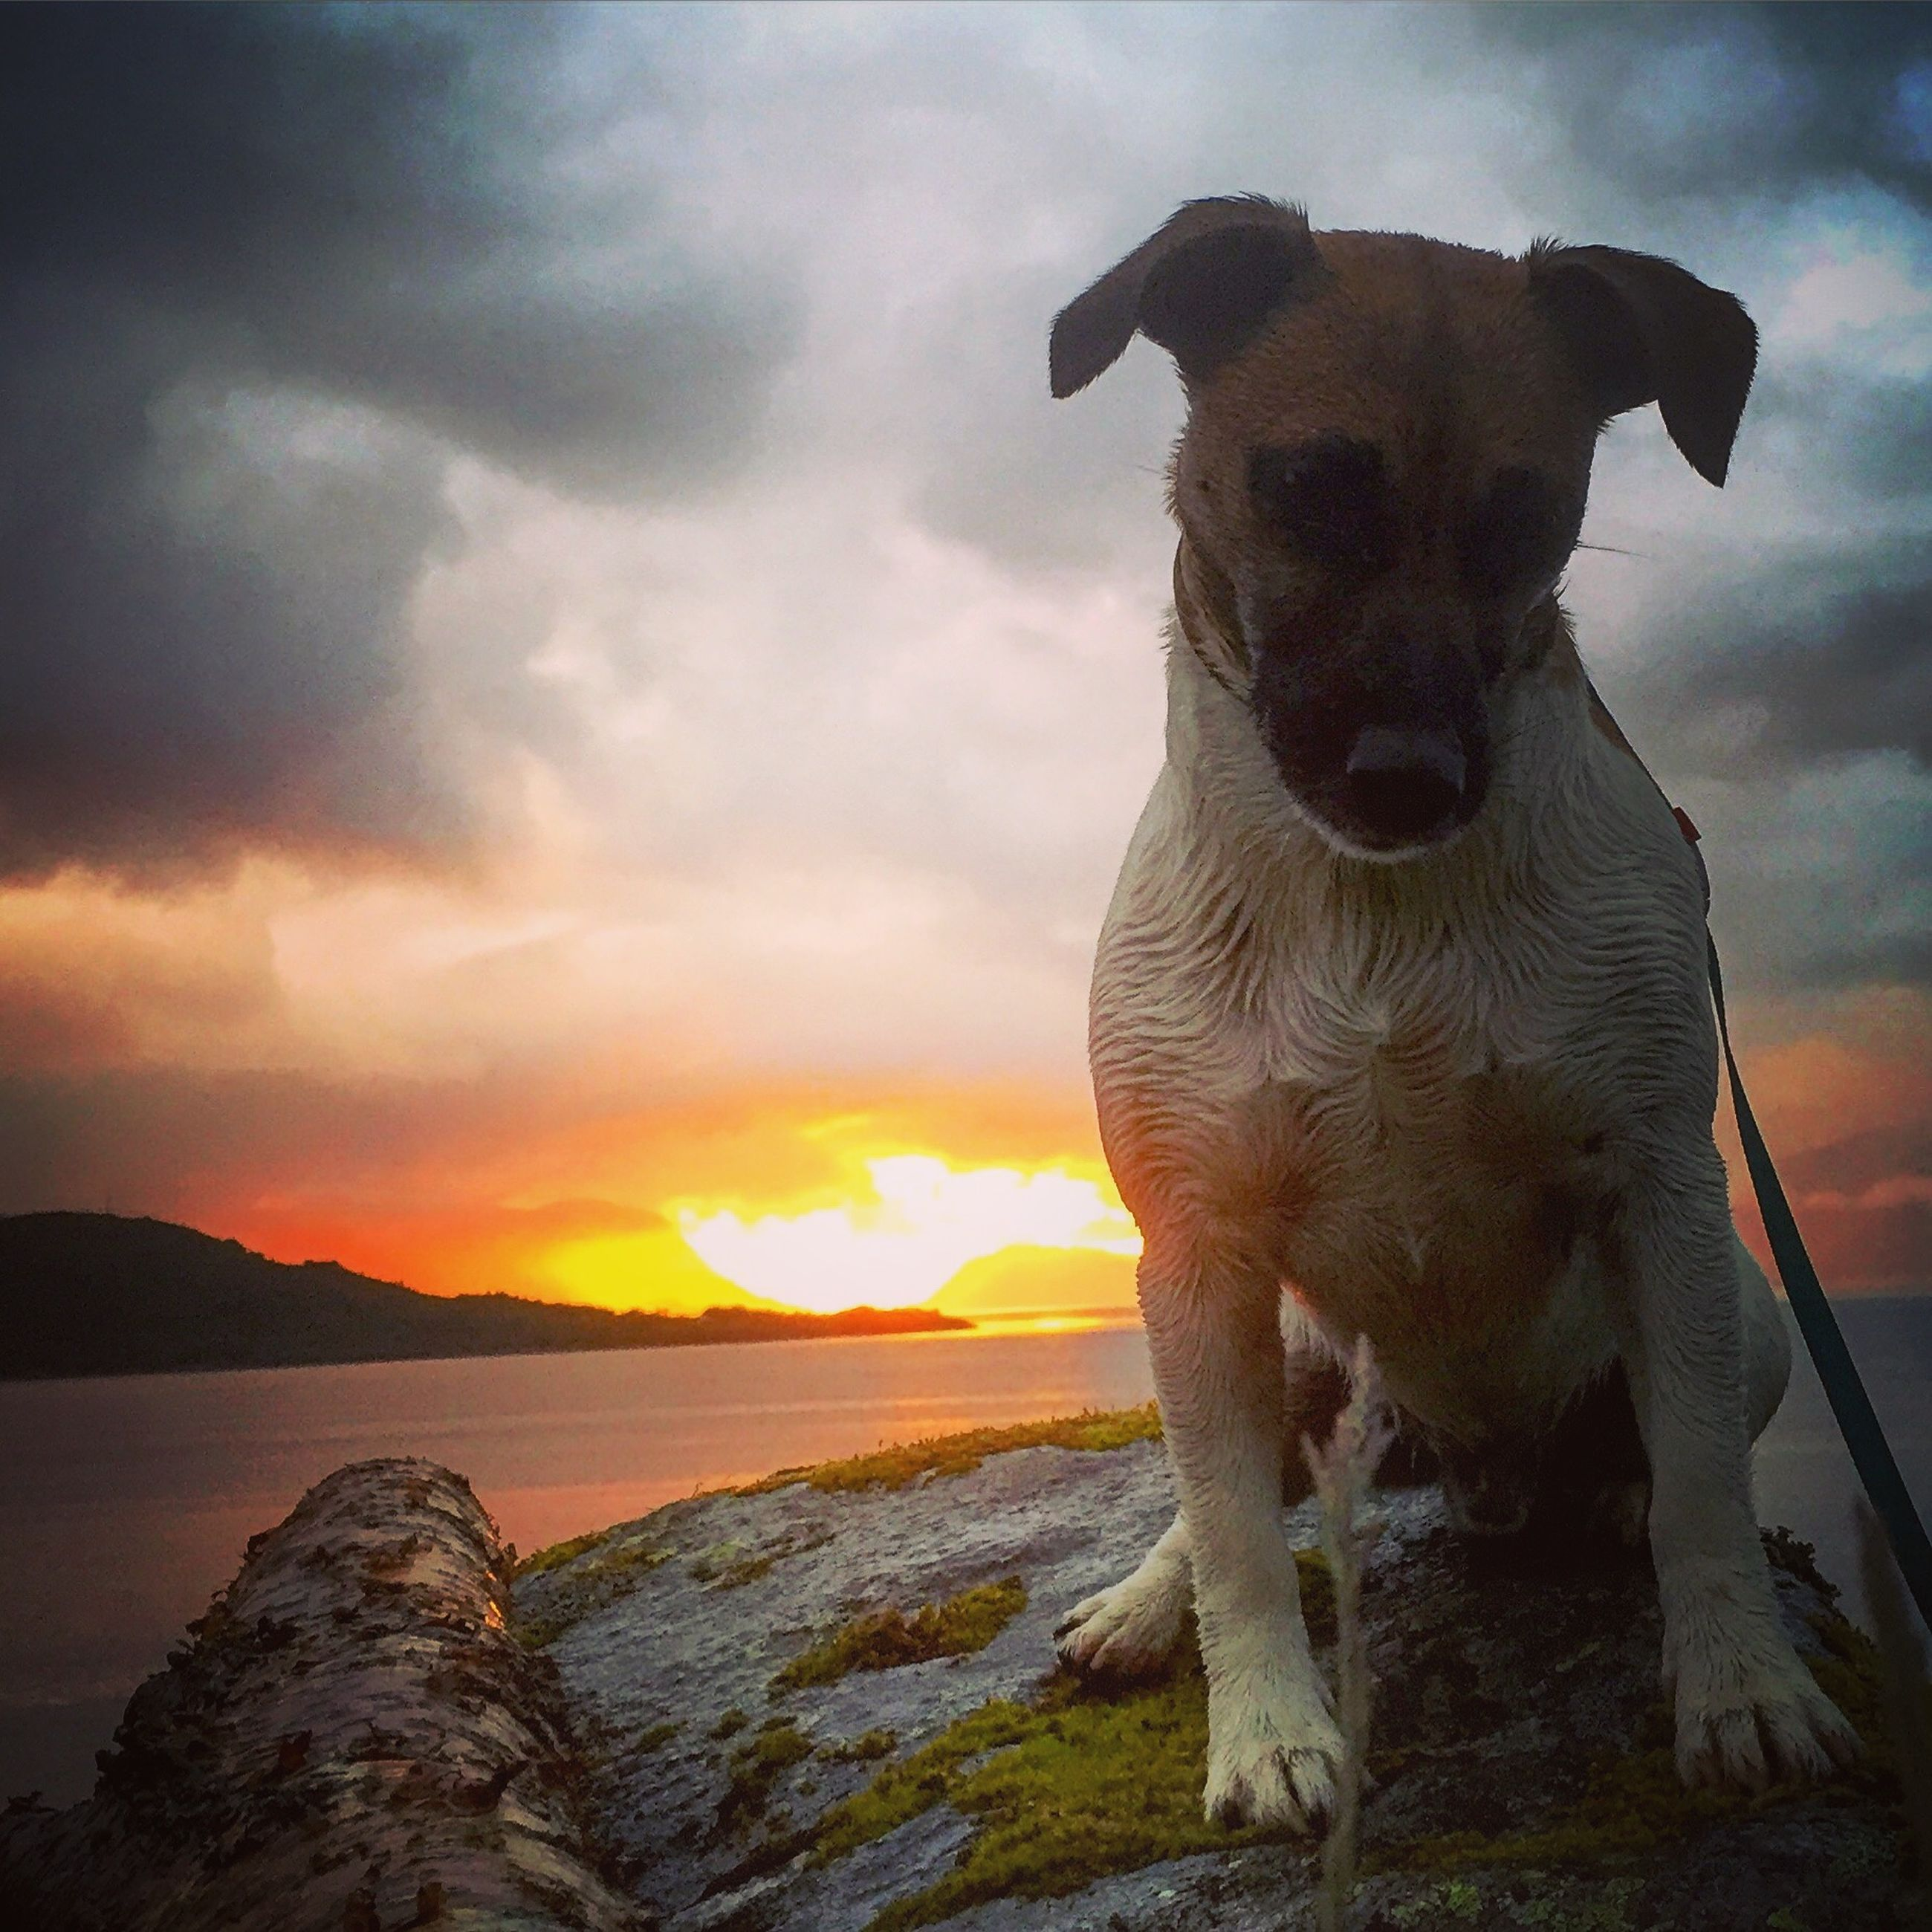 sunset, sky, one animal, animal themes, water, sea, cloud - sky, nature, beauty in nature, rock - object, scenics, tranquility, tranquil scene, orange color, silhouette, outdoors, cloud, no people, horizon over water, dusk